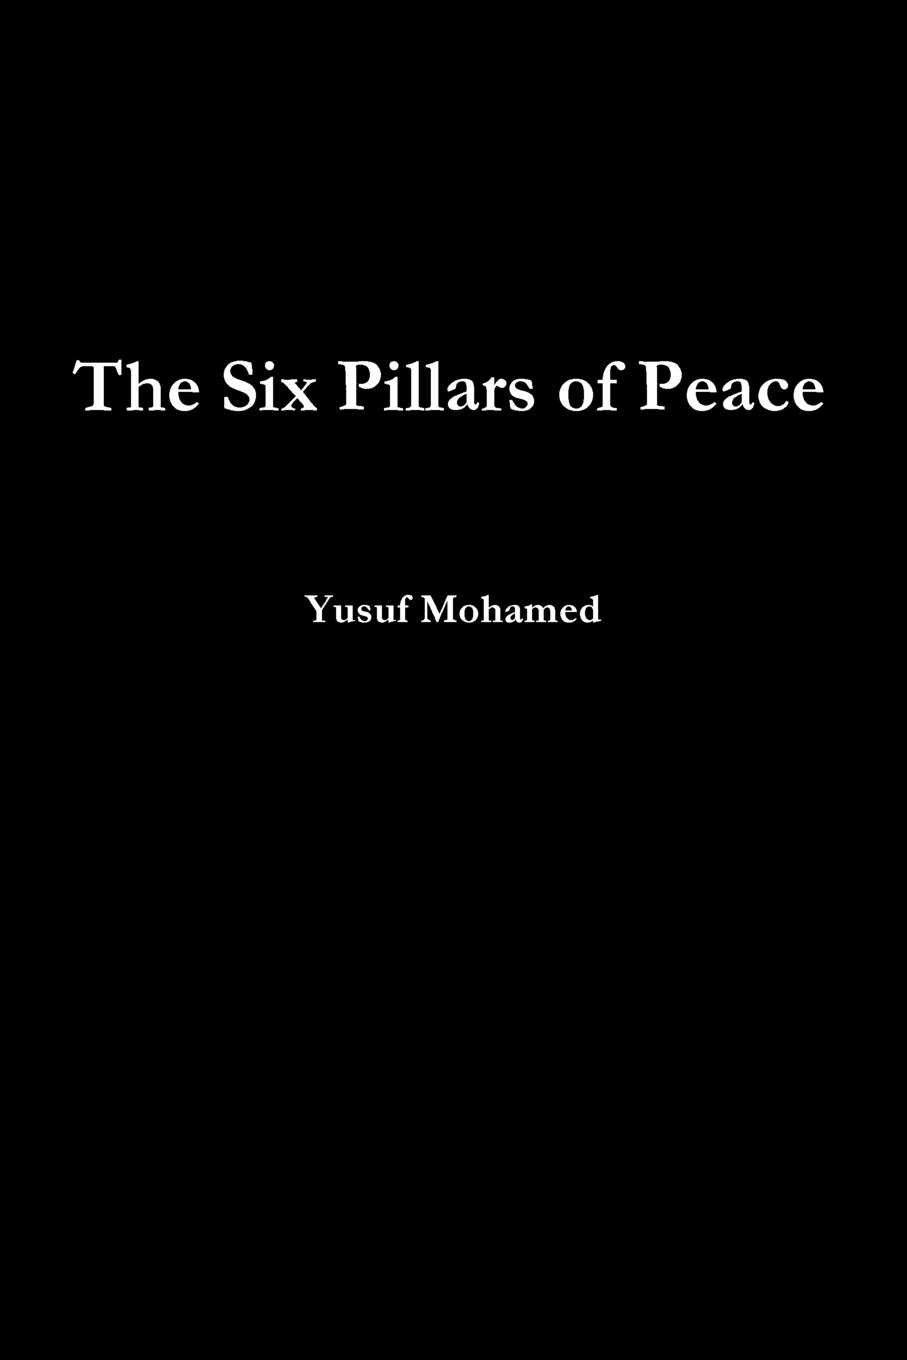 лучшая цена Yusuf Mohamed The Six Pillars of Peace